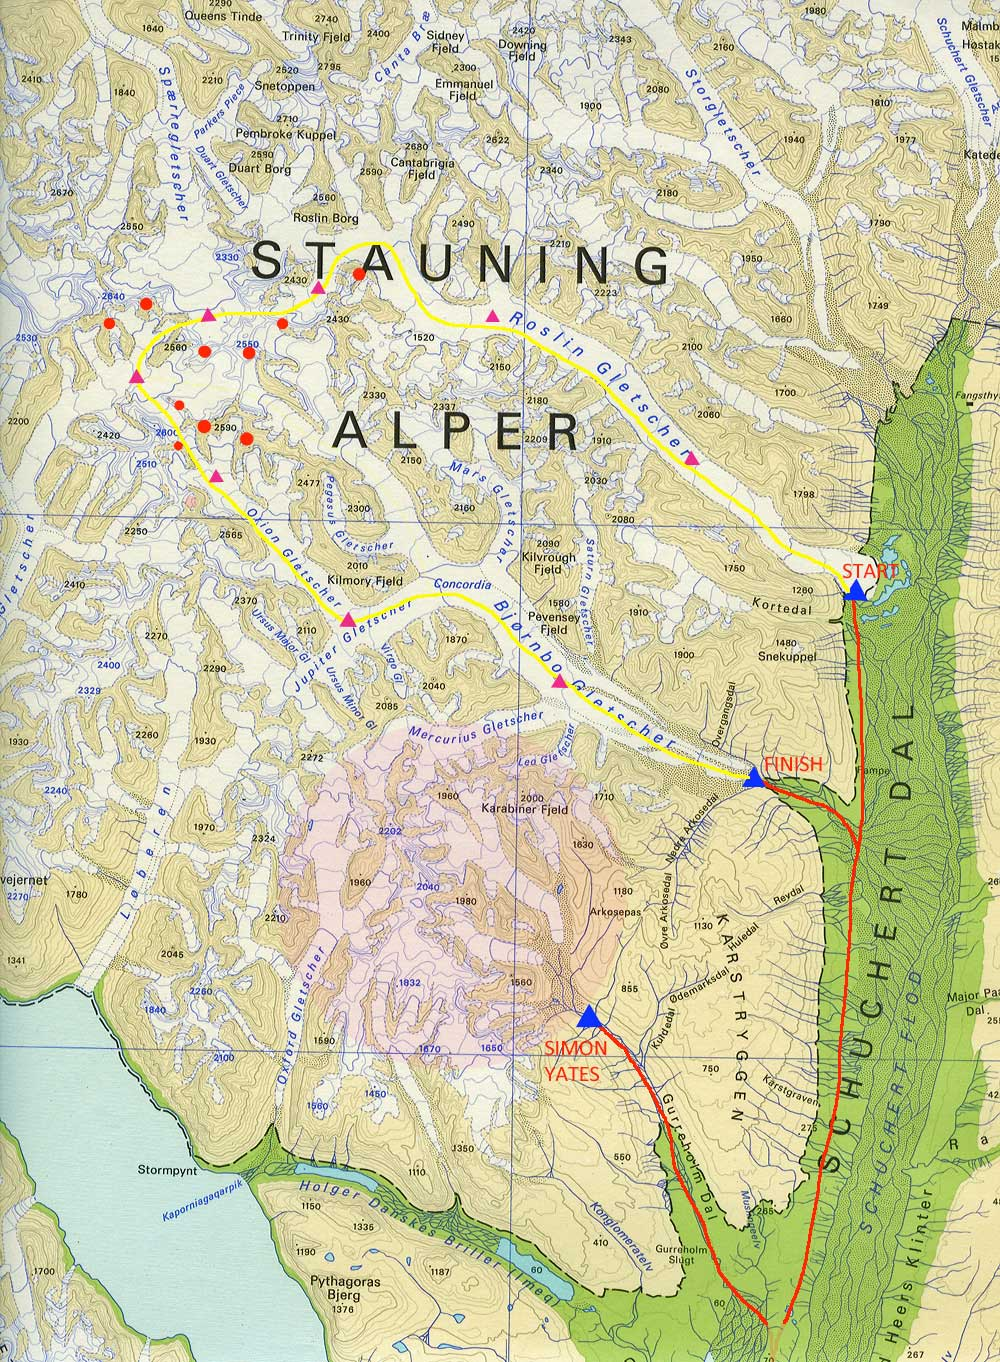 stauning alps route map.jpg